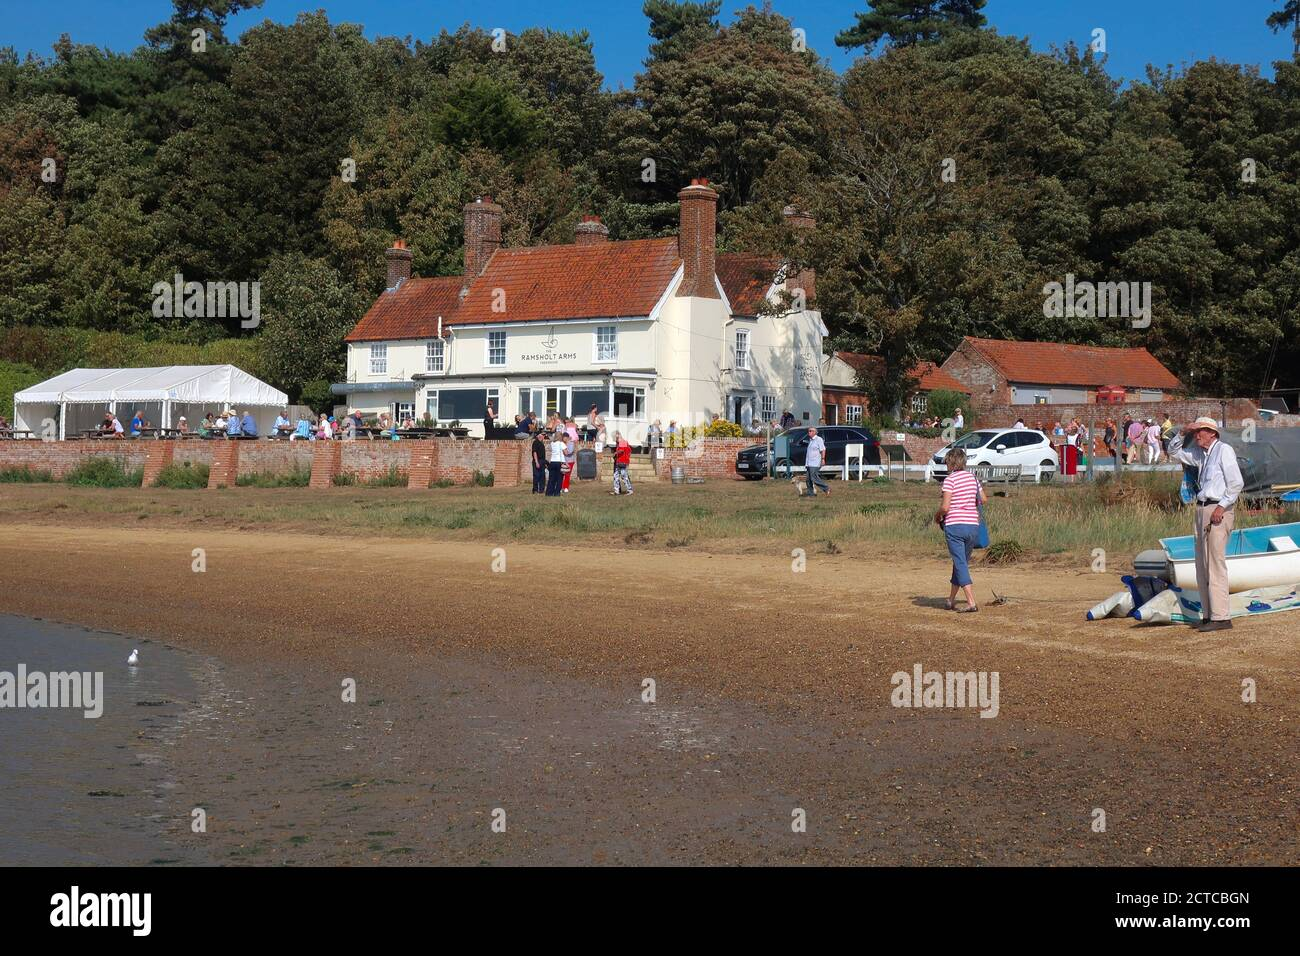 Ramsholt, Suffolk, UK - 22 September 2020: Sunny autumn day for an al fresco lunch at the Ramsholt Arms beside the River Deben. Stock Photo